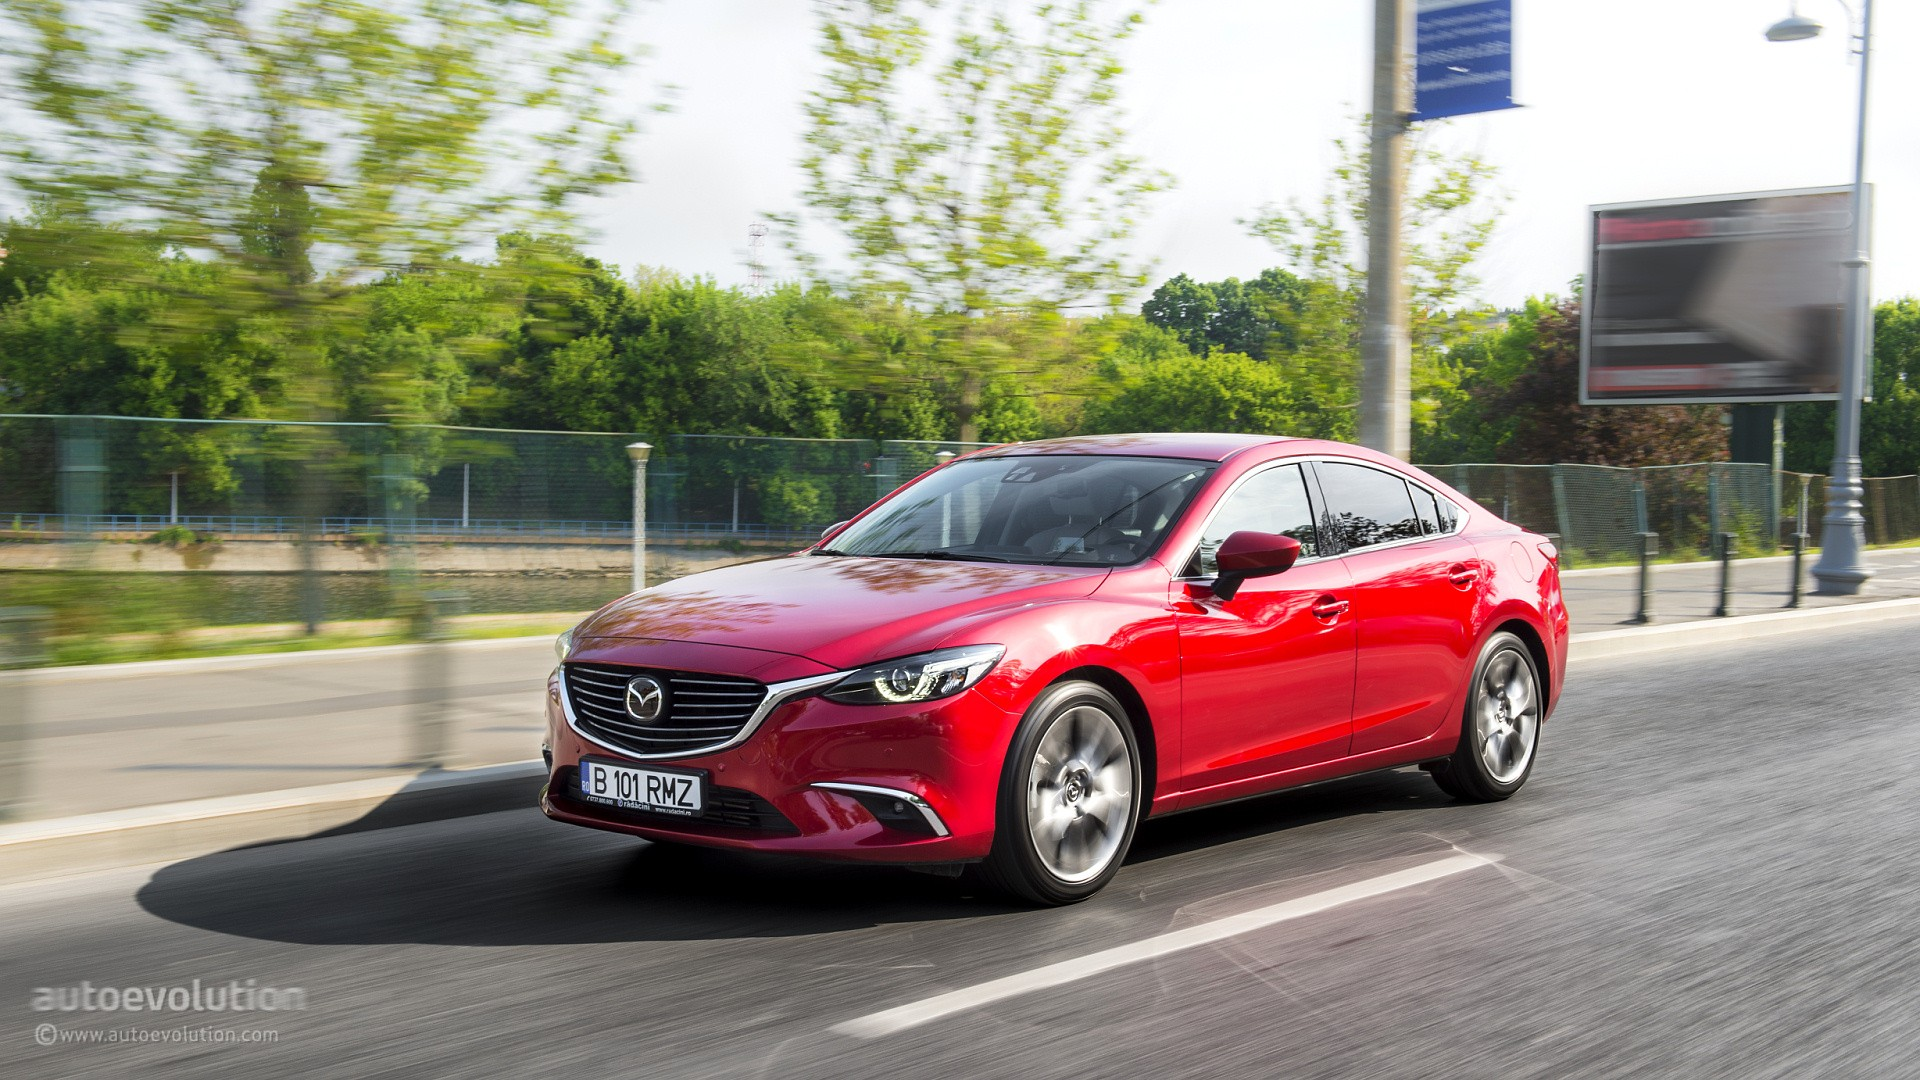 Mazda 6 Review 2016 – Car Image Idea